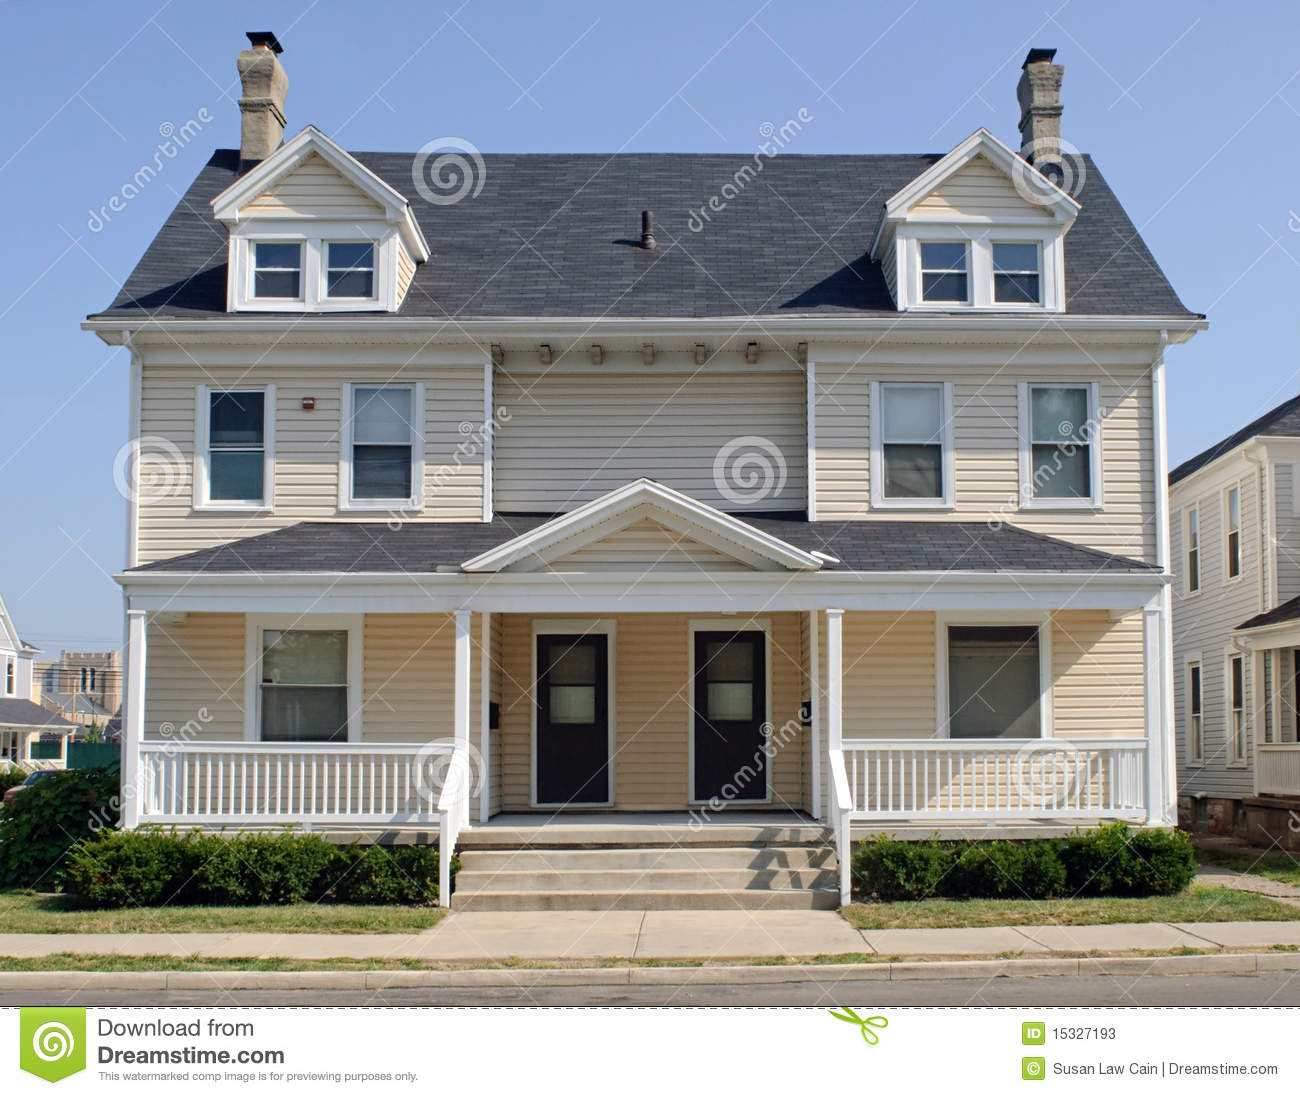 1 316 Duplex House Photos Free Royalty Free Stock Photos From Dreamstime